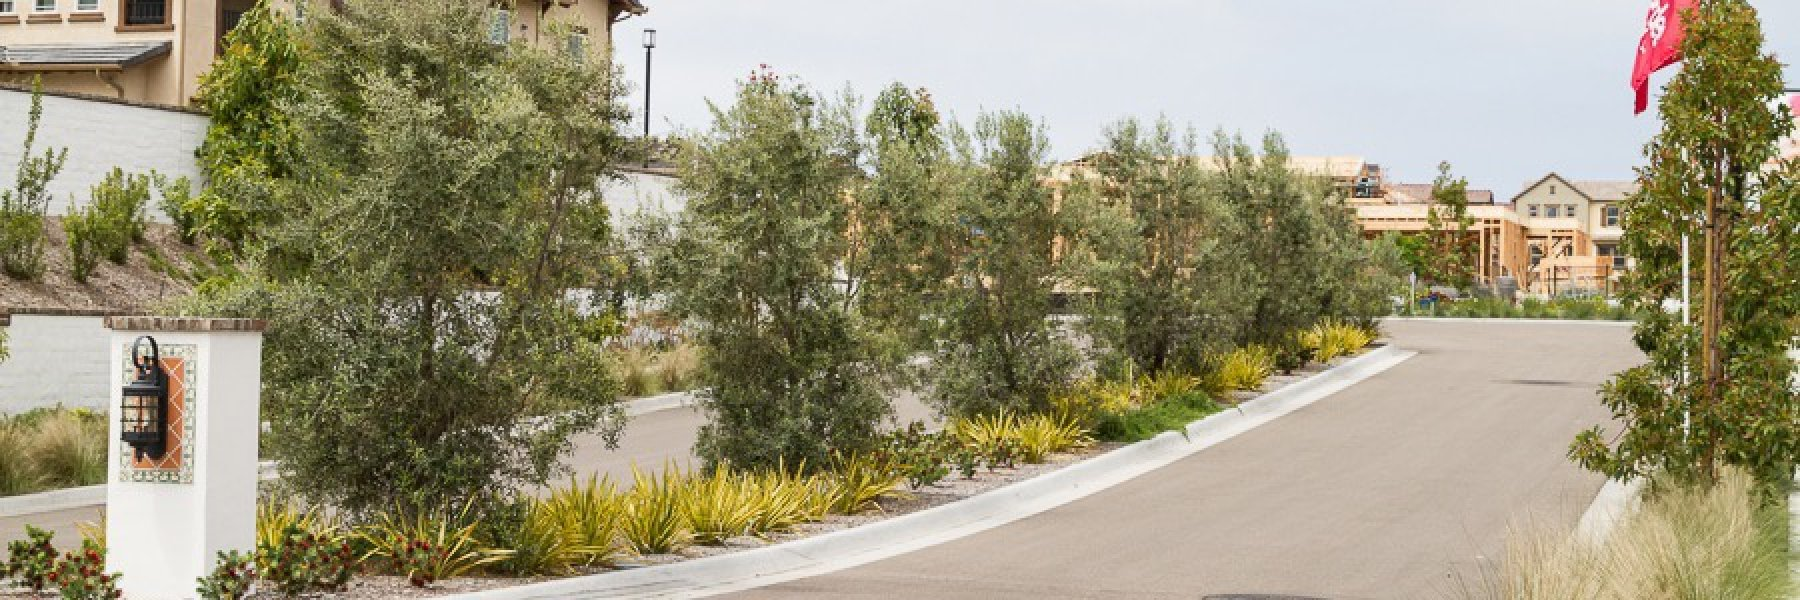 Canterra is a community of homes in San Diego California